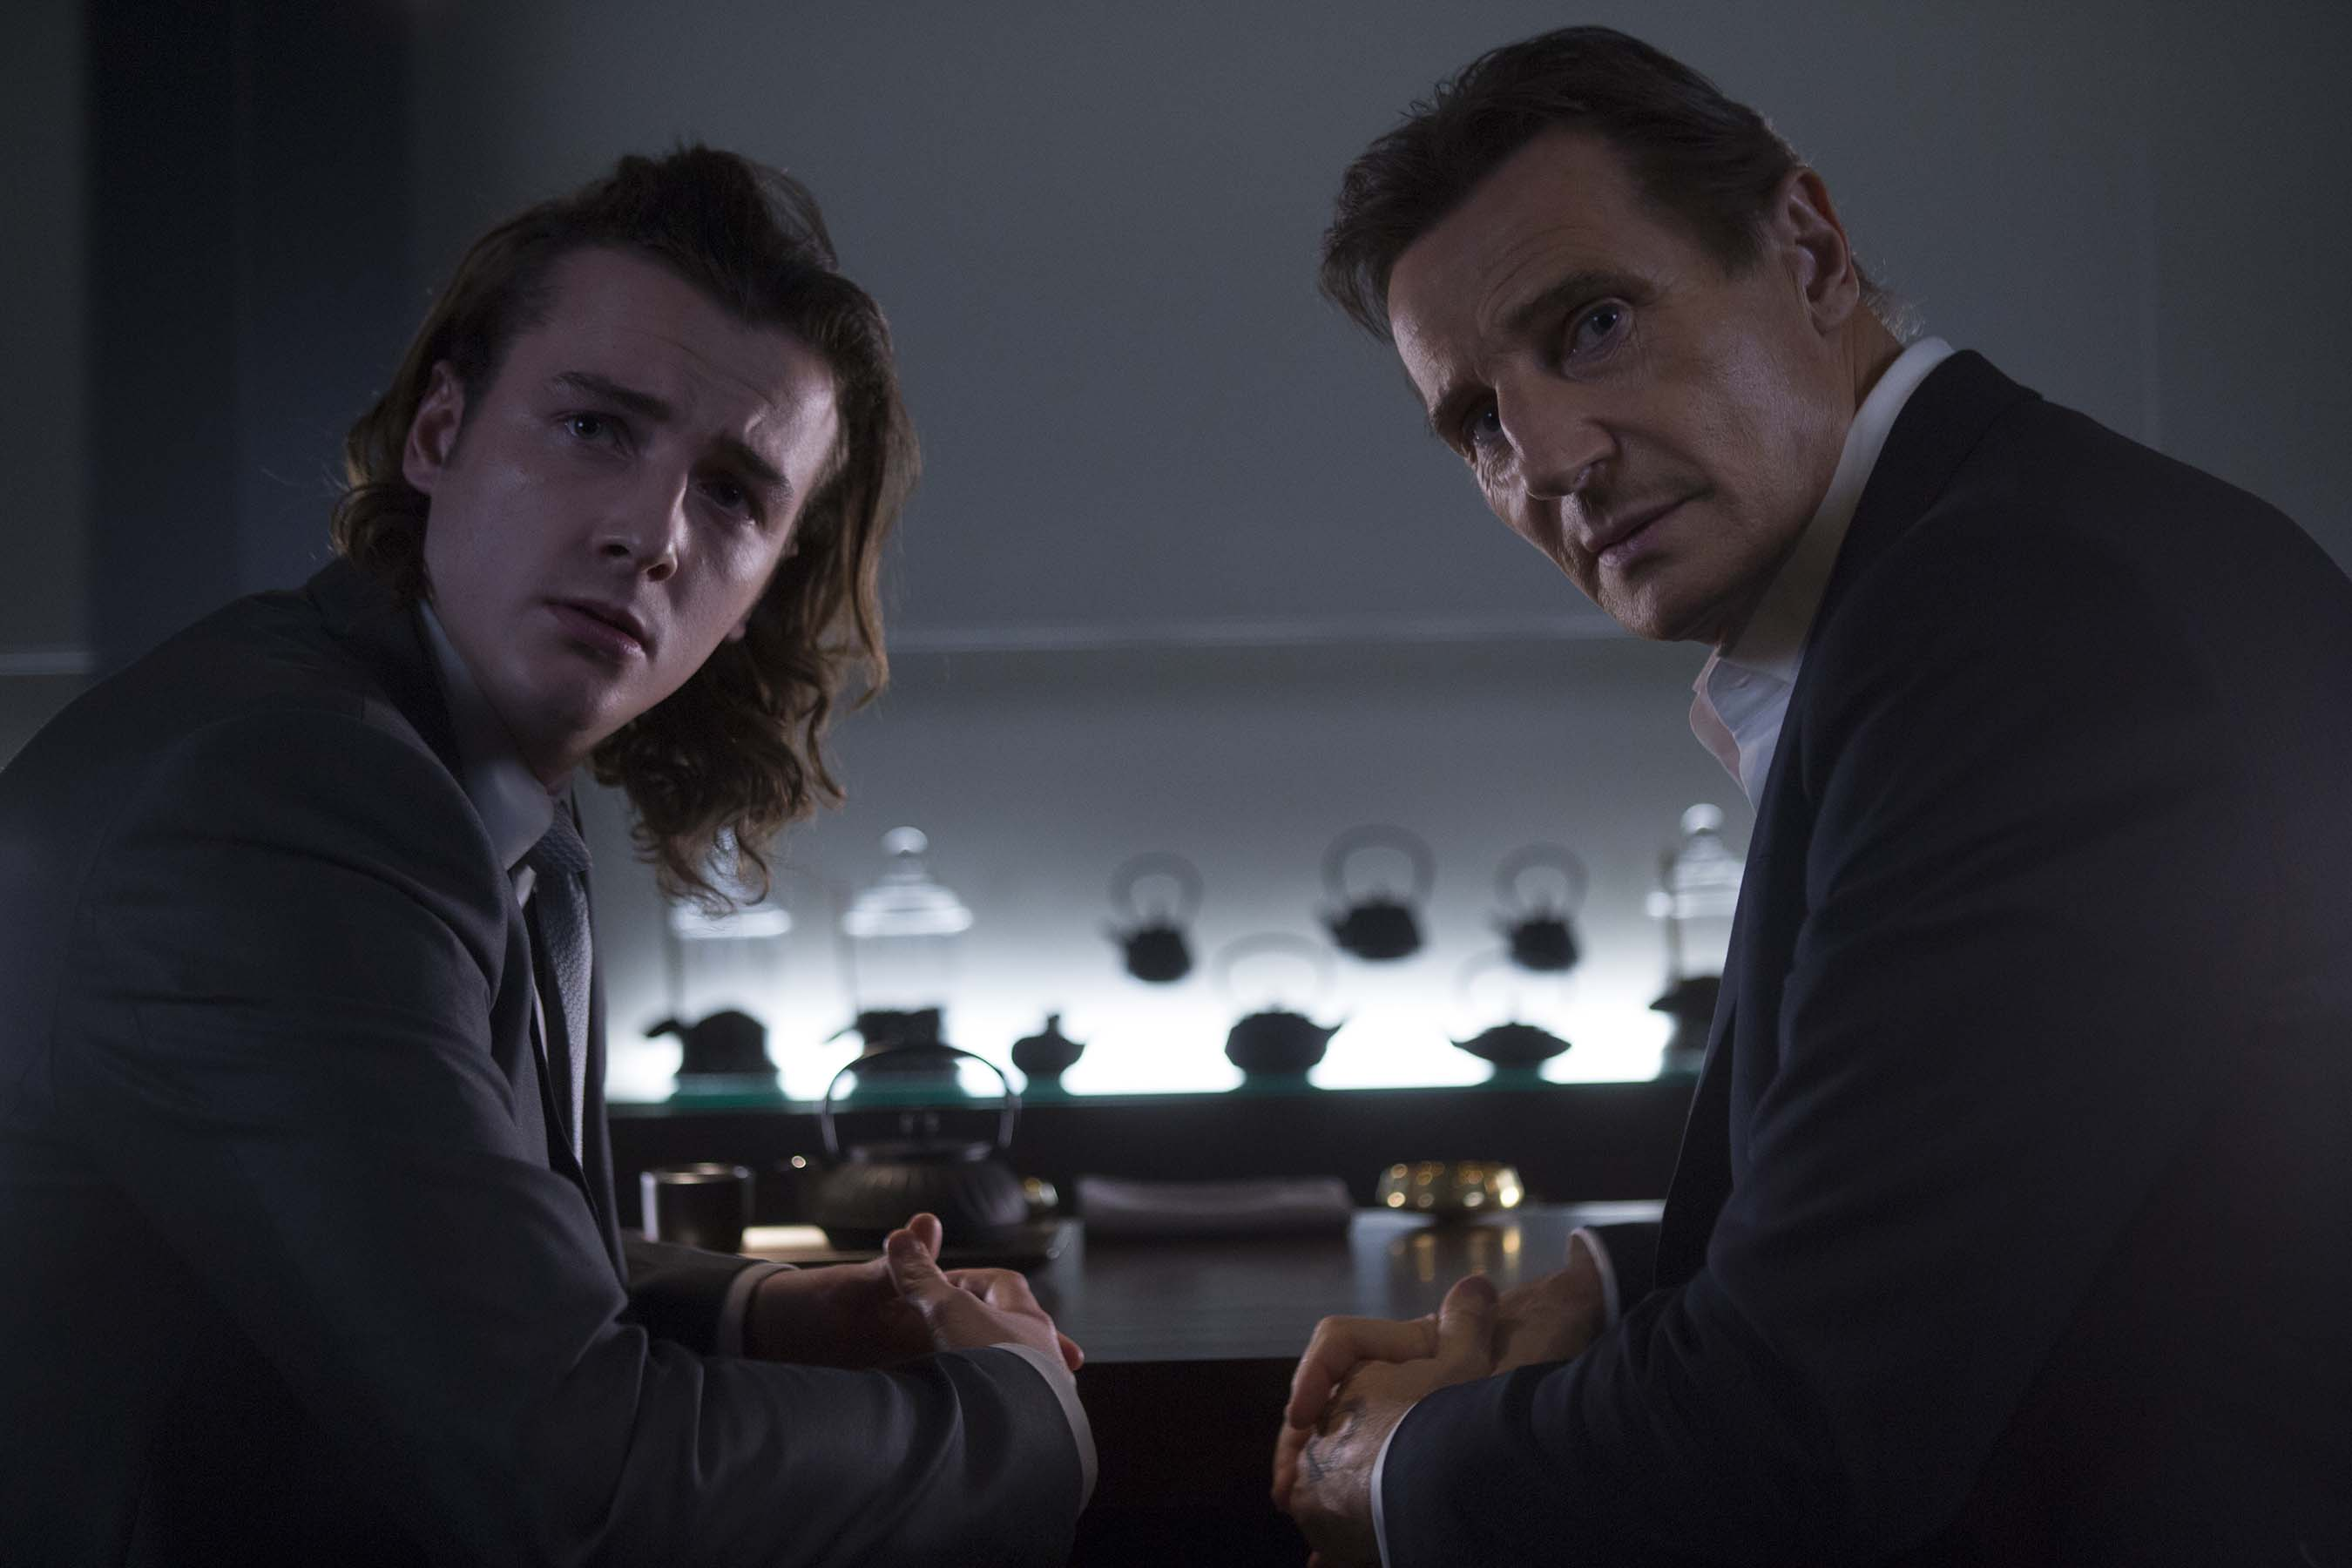 http://www.multivu.com/players/English/7743351-lg-oled-tv-super-bowl-commercial/image/lg%e2%80%99s-super-bowl-commercial-with-liam-neeson-14-HR.jpg